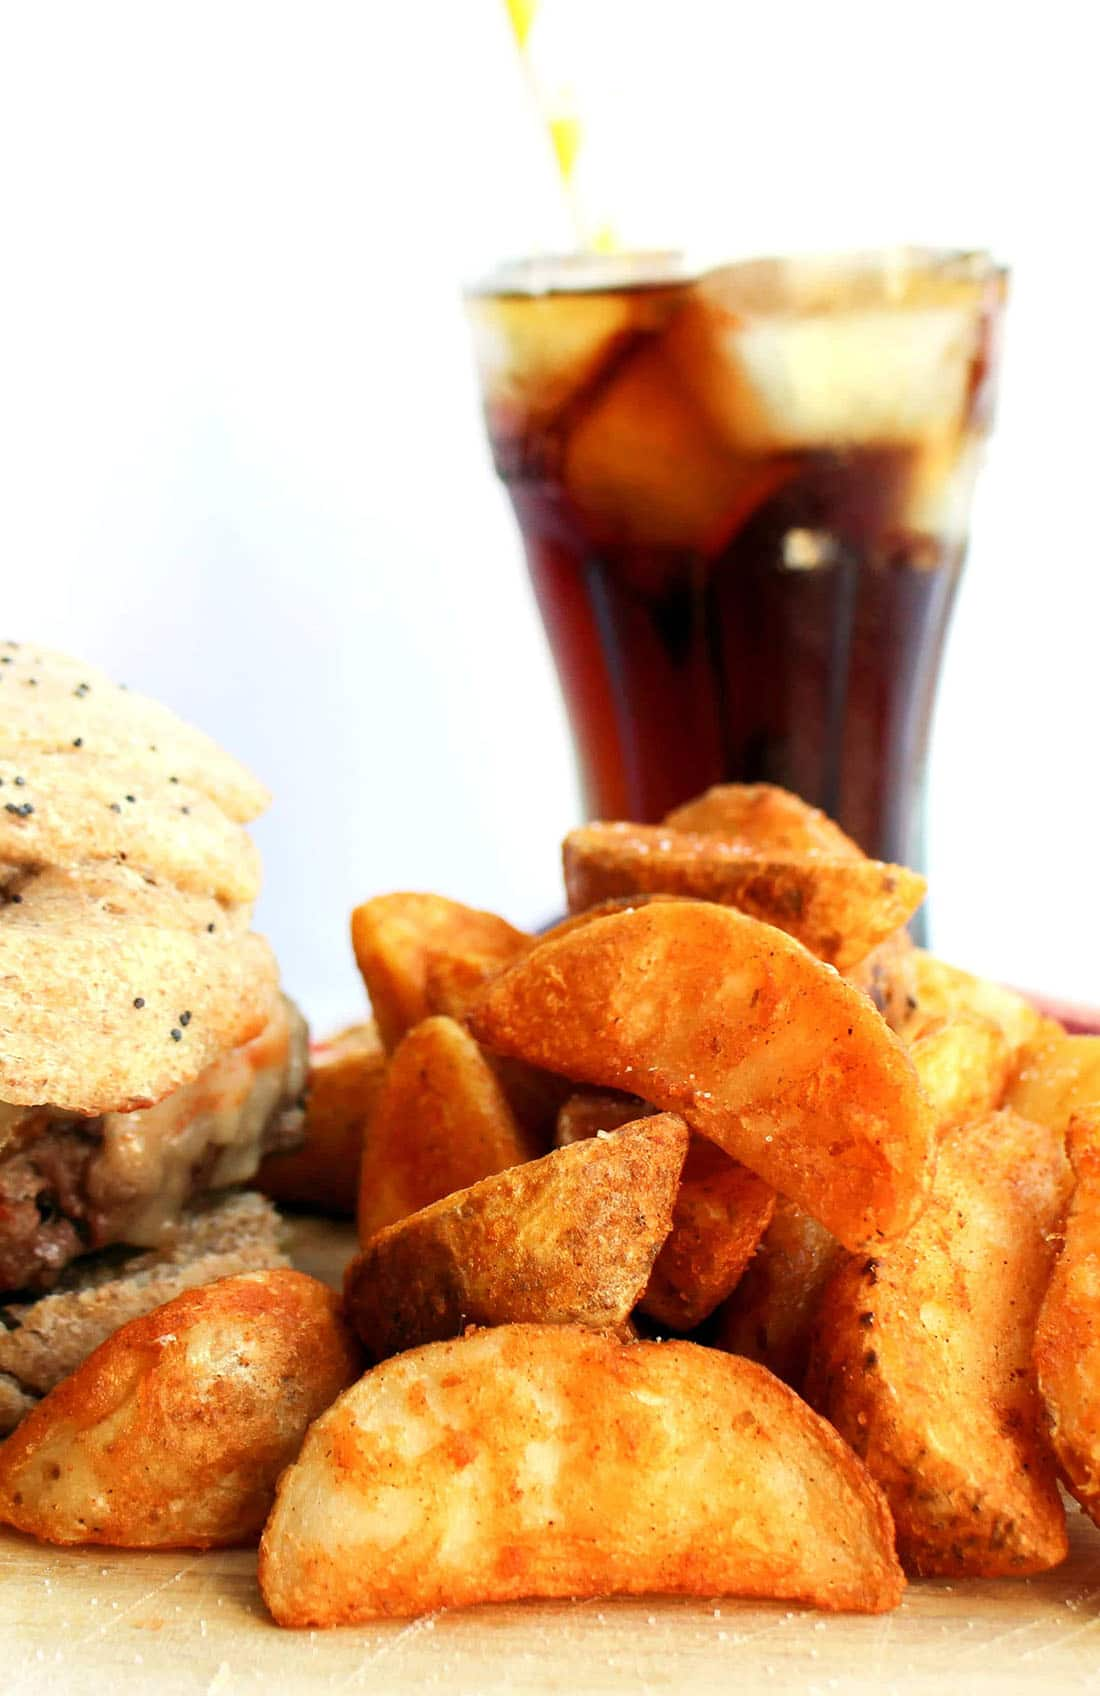 A plate of the Seasoned Baked Potato Wedges with a burger and a coke in the background.